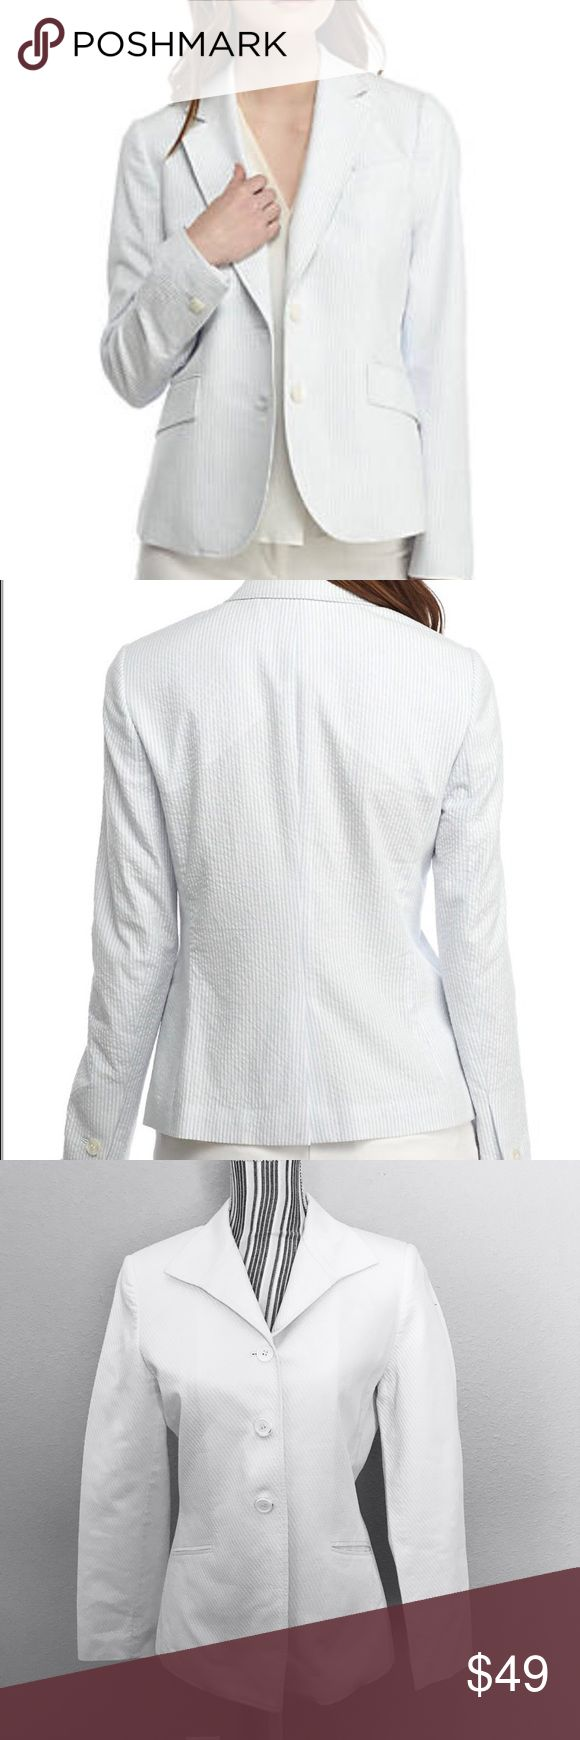 Anne Klein Double Button Seersucker Jacket Size 6 Anne Klein Double Button Seersucker Blazer Jacket White Size 6  Armpit to armpit: 19in  Shoulder to shoulder: 16in  Length: 26in  All items are in EXCELLENT USED CONDITION.  I strive to provide quality items and excellent customer service. Feel free to contact me with any questions! New items added daily so follow me to keep up with the great deals!  Thank you!  ITEM A32 Anne Klein Jackets & Coats Blazers